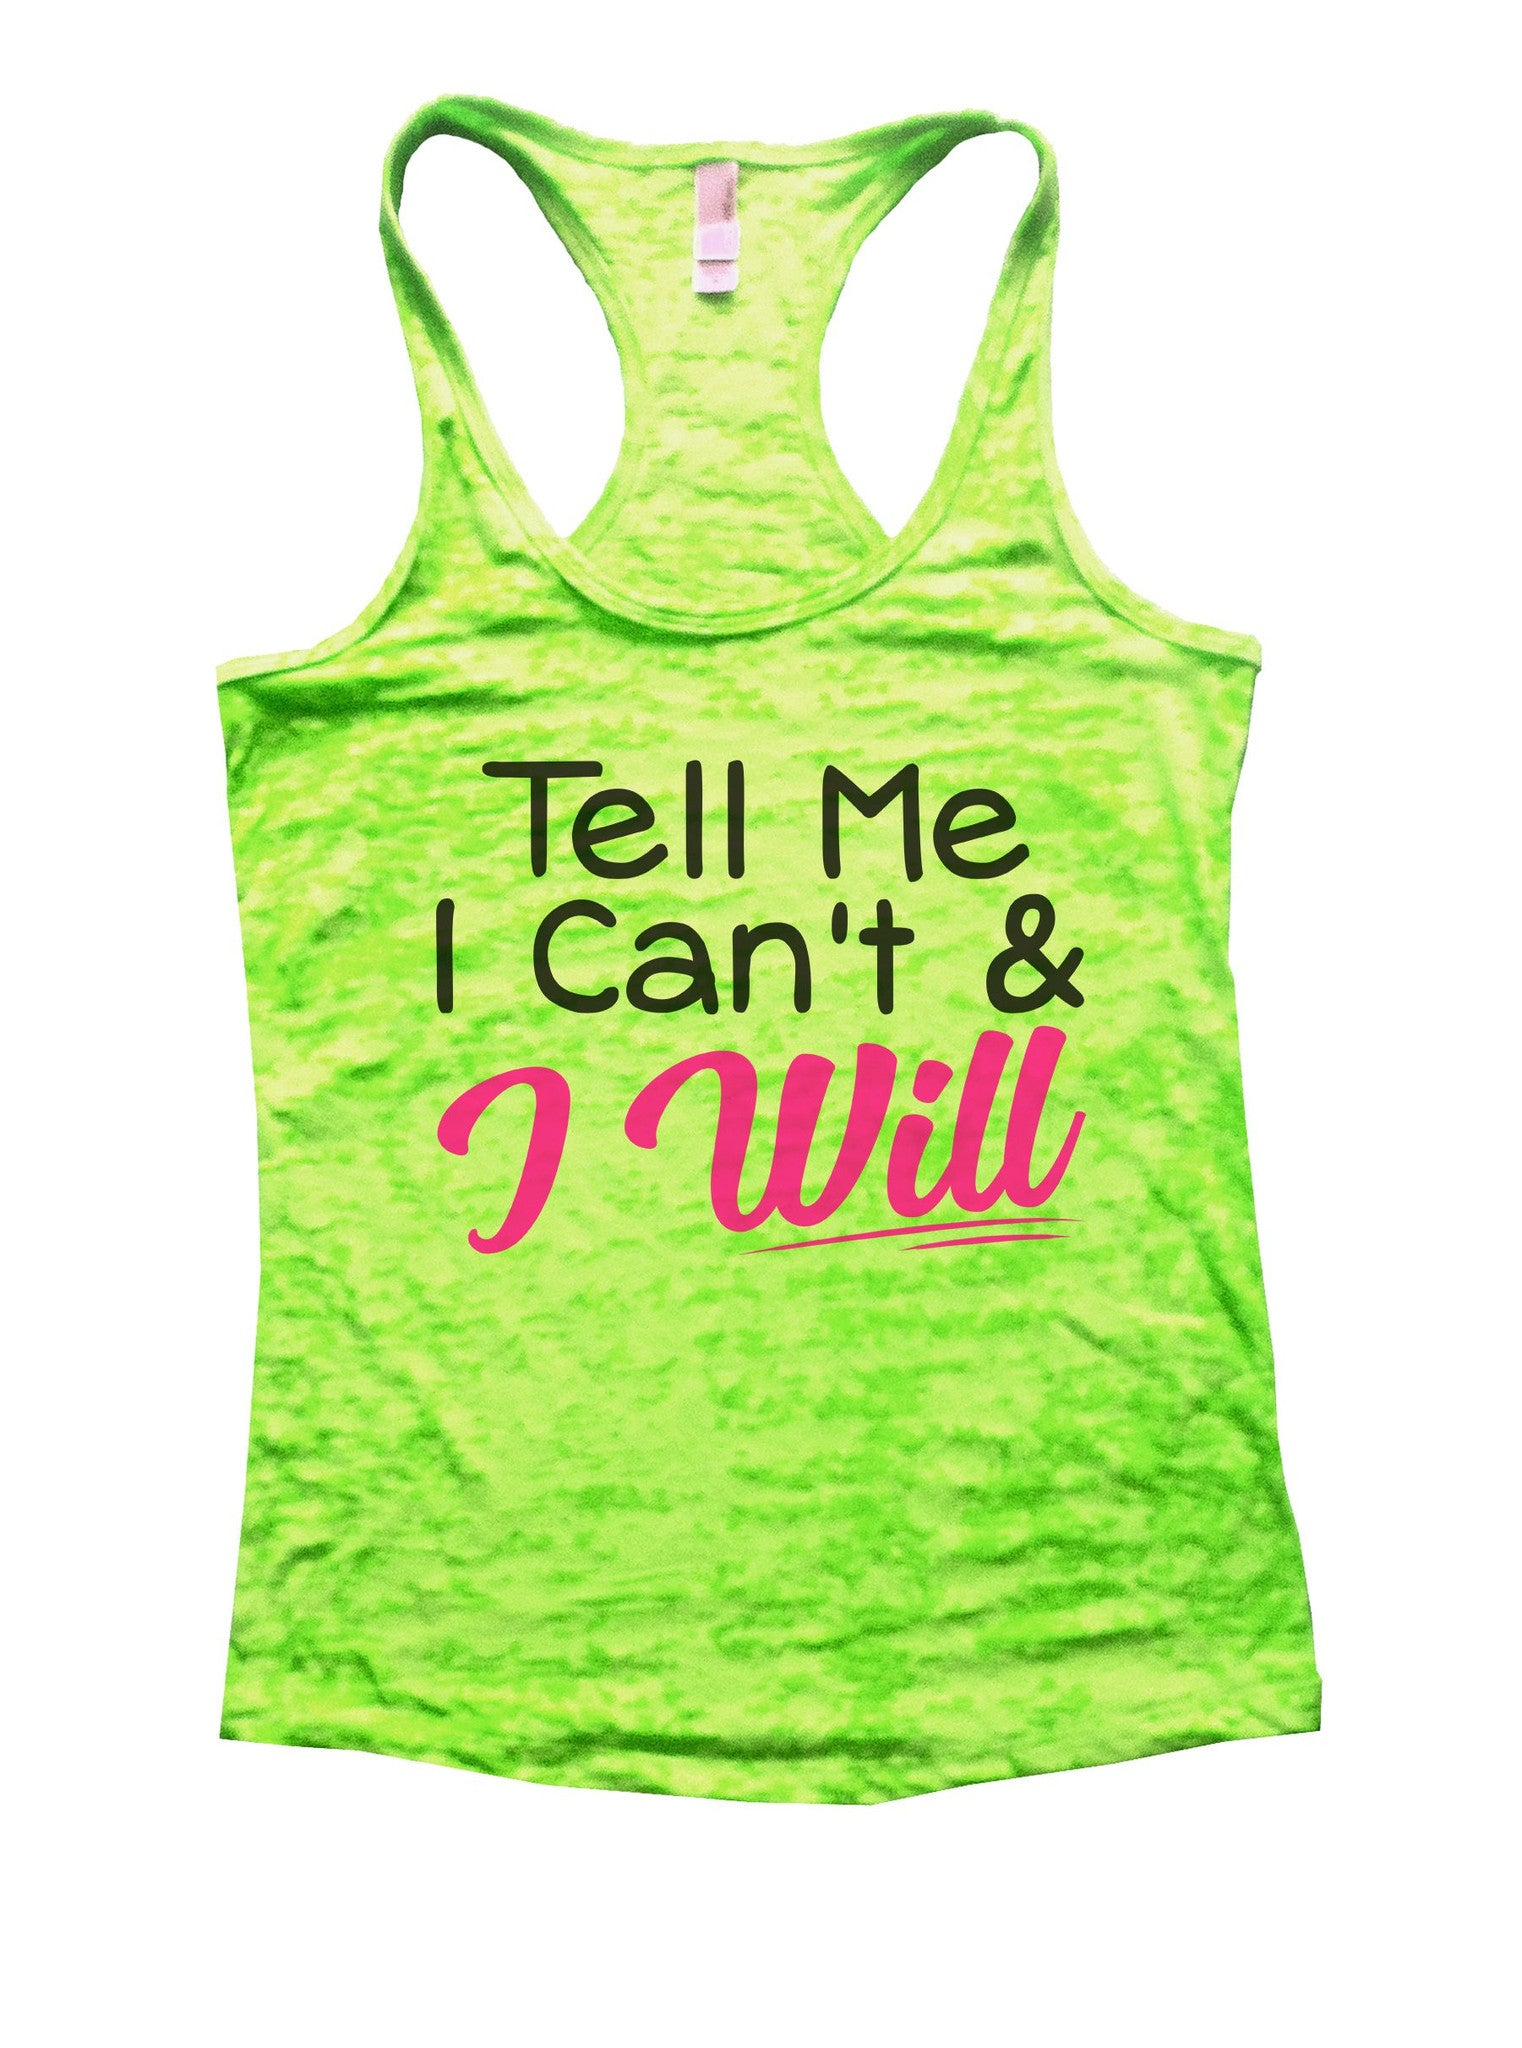 Tell Me I Can't & I Will Burnout Tank Top By BurnoutTankTops.com - 1071 - Funny Shirts Tank Tops Burnouts and Triblends  - 1